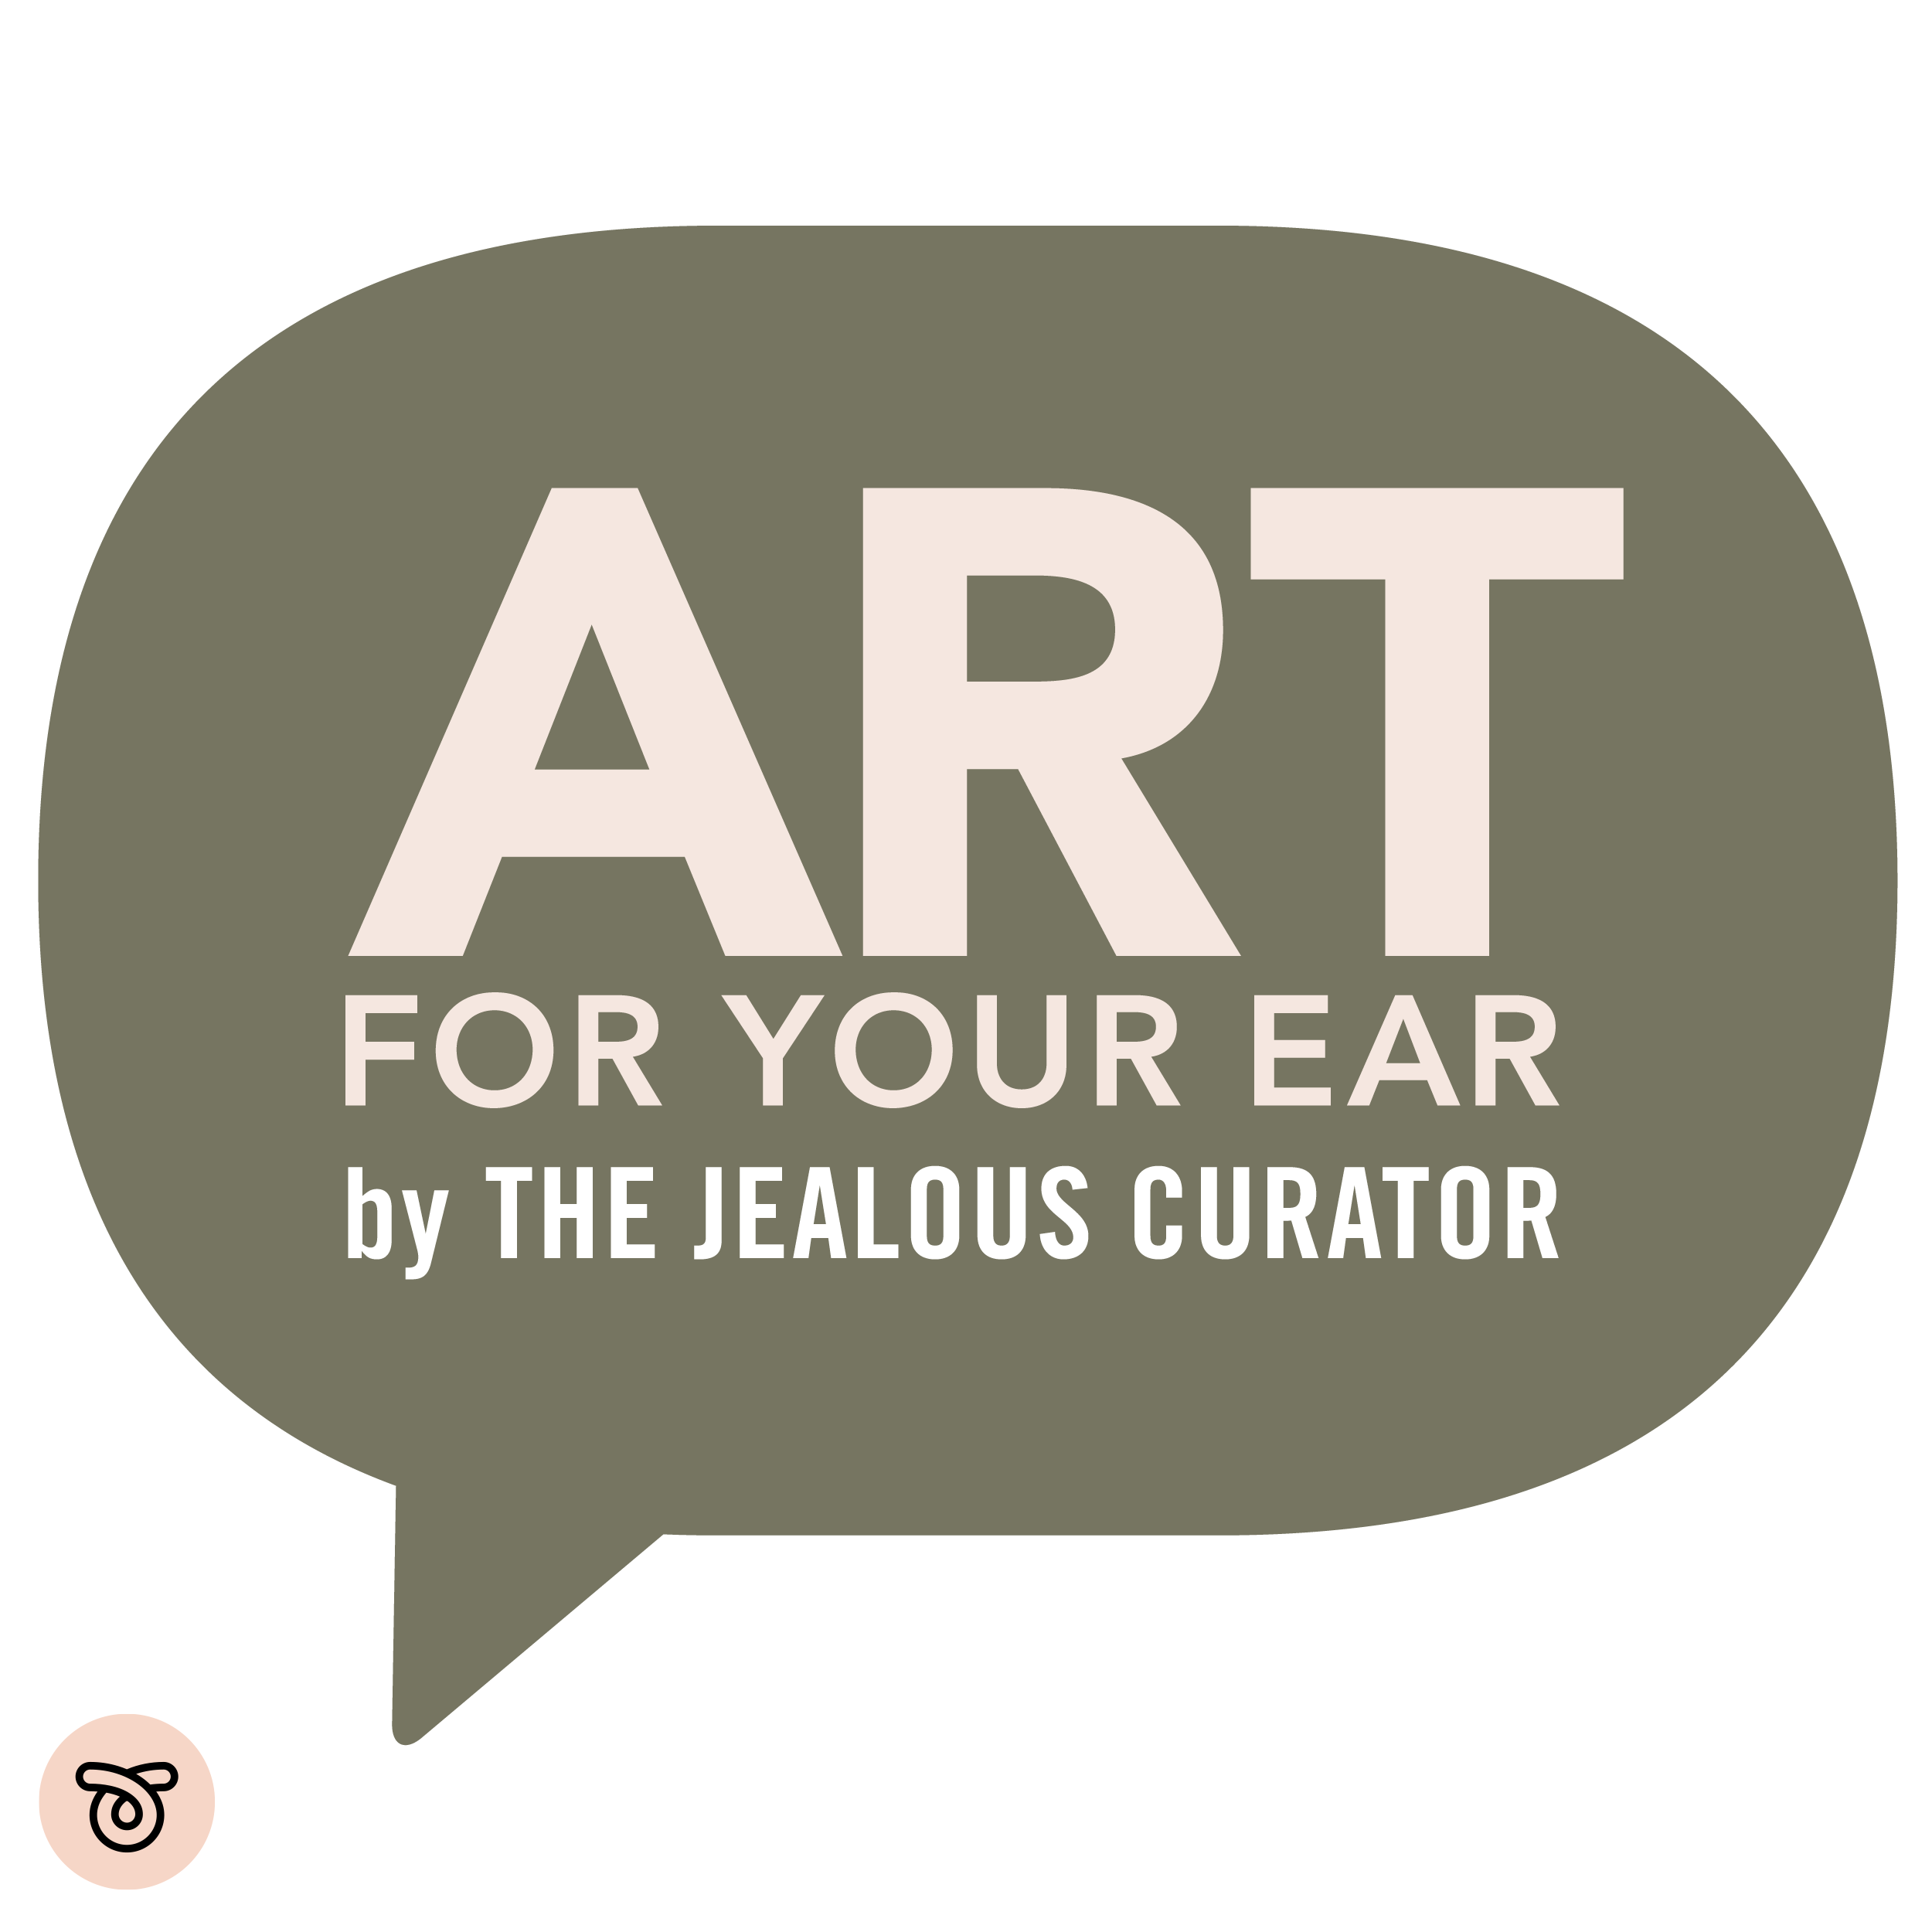 The Jealous Curator : ART FOR YOUR EAR